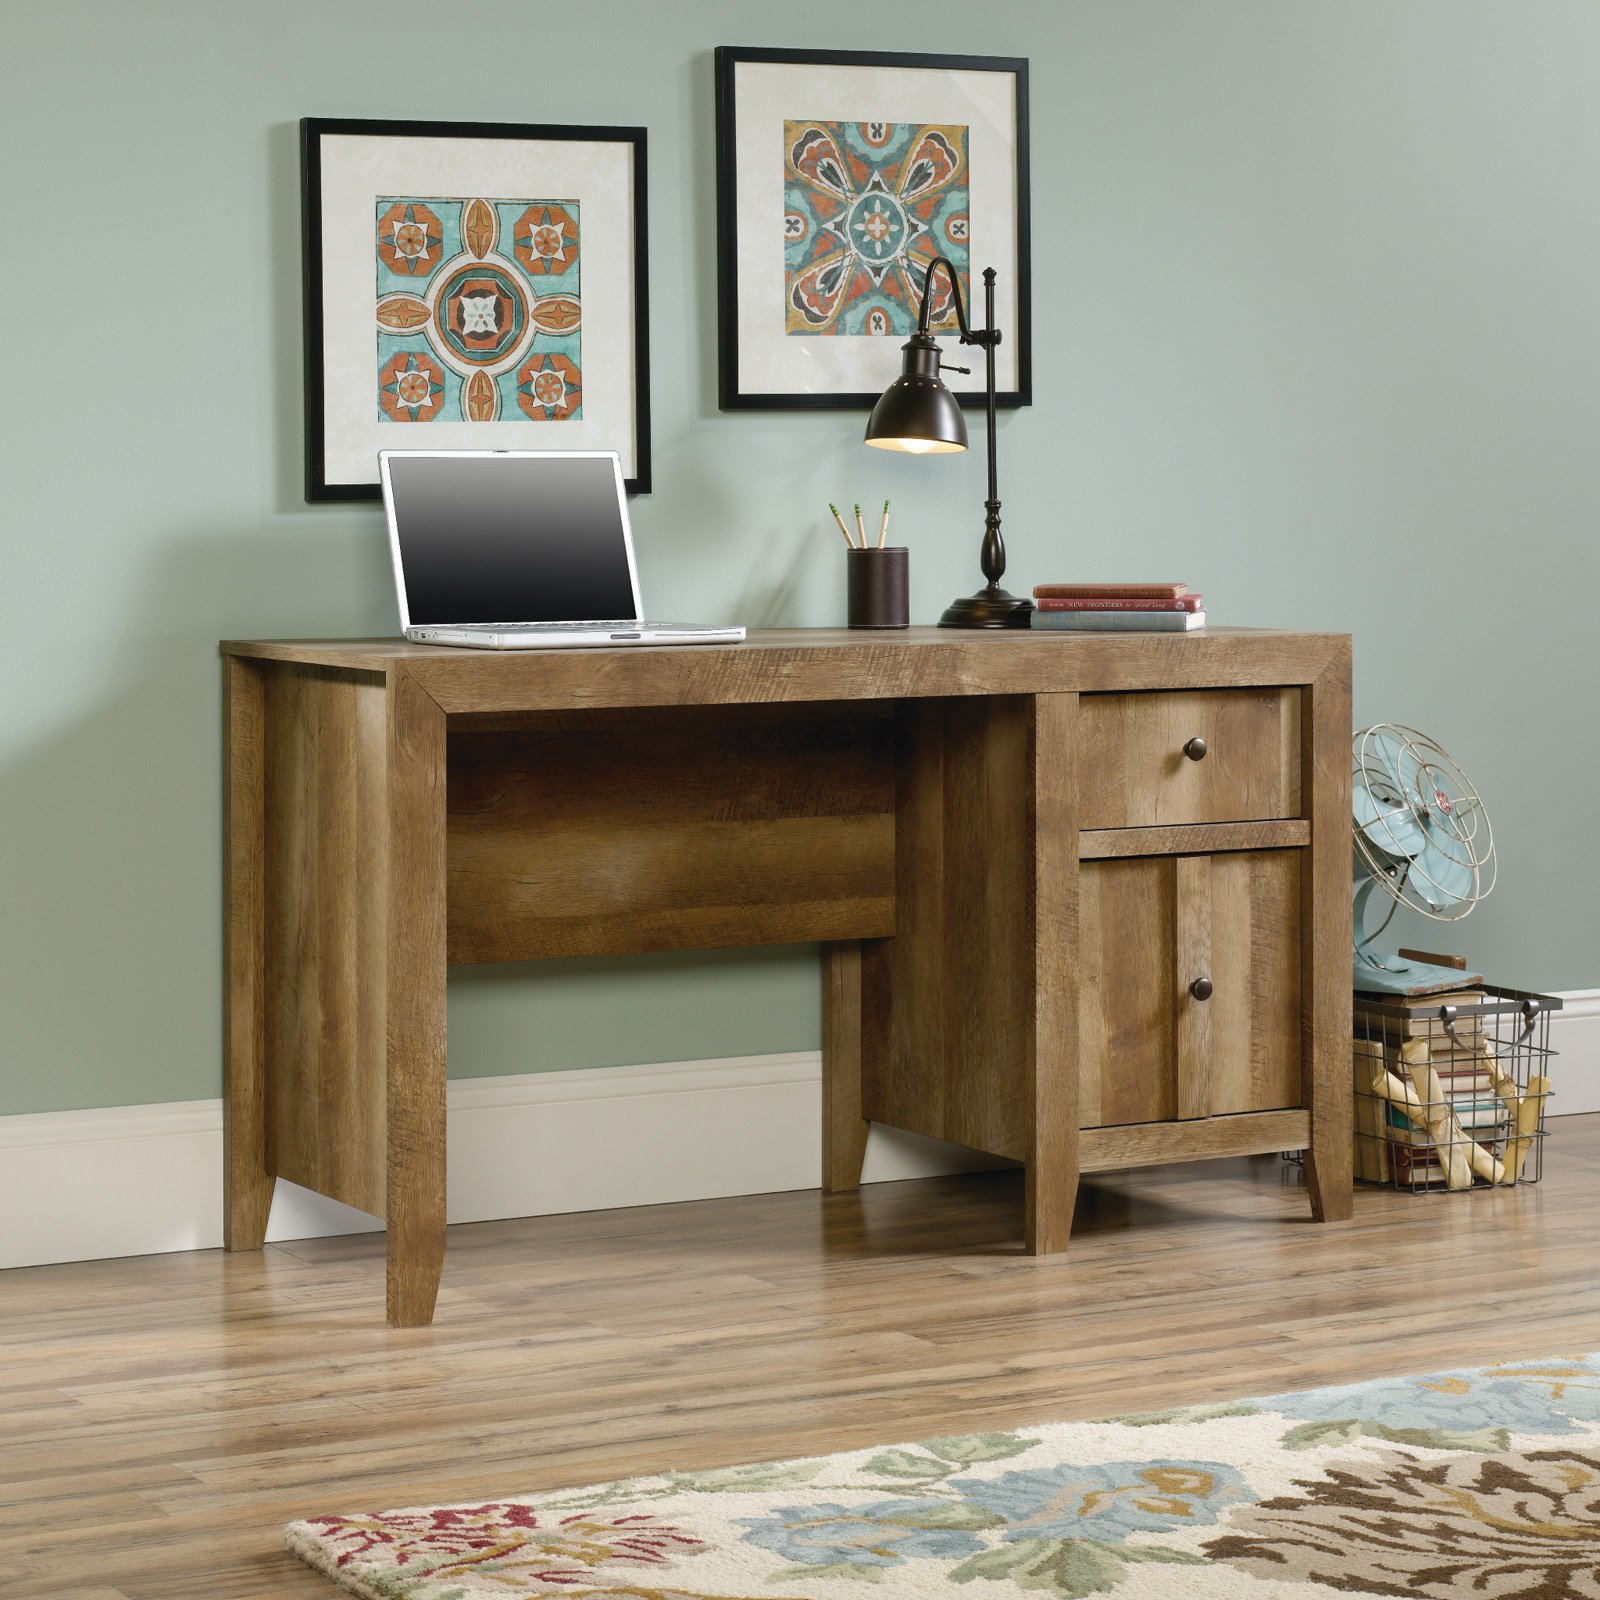 Sauder Dakota Pass Desk, Craftsman Oak